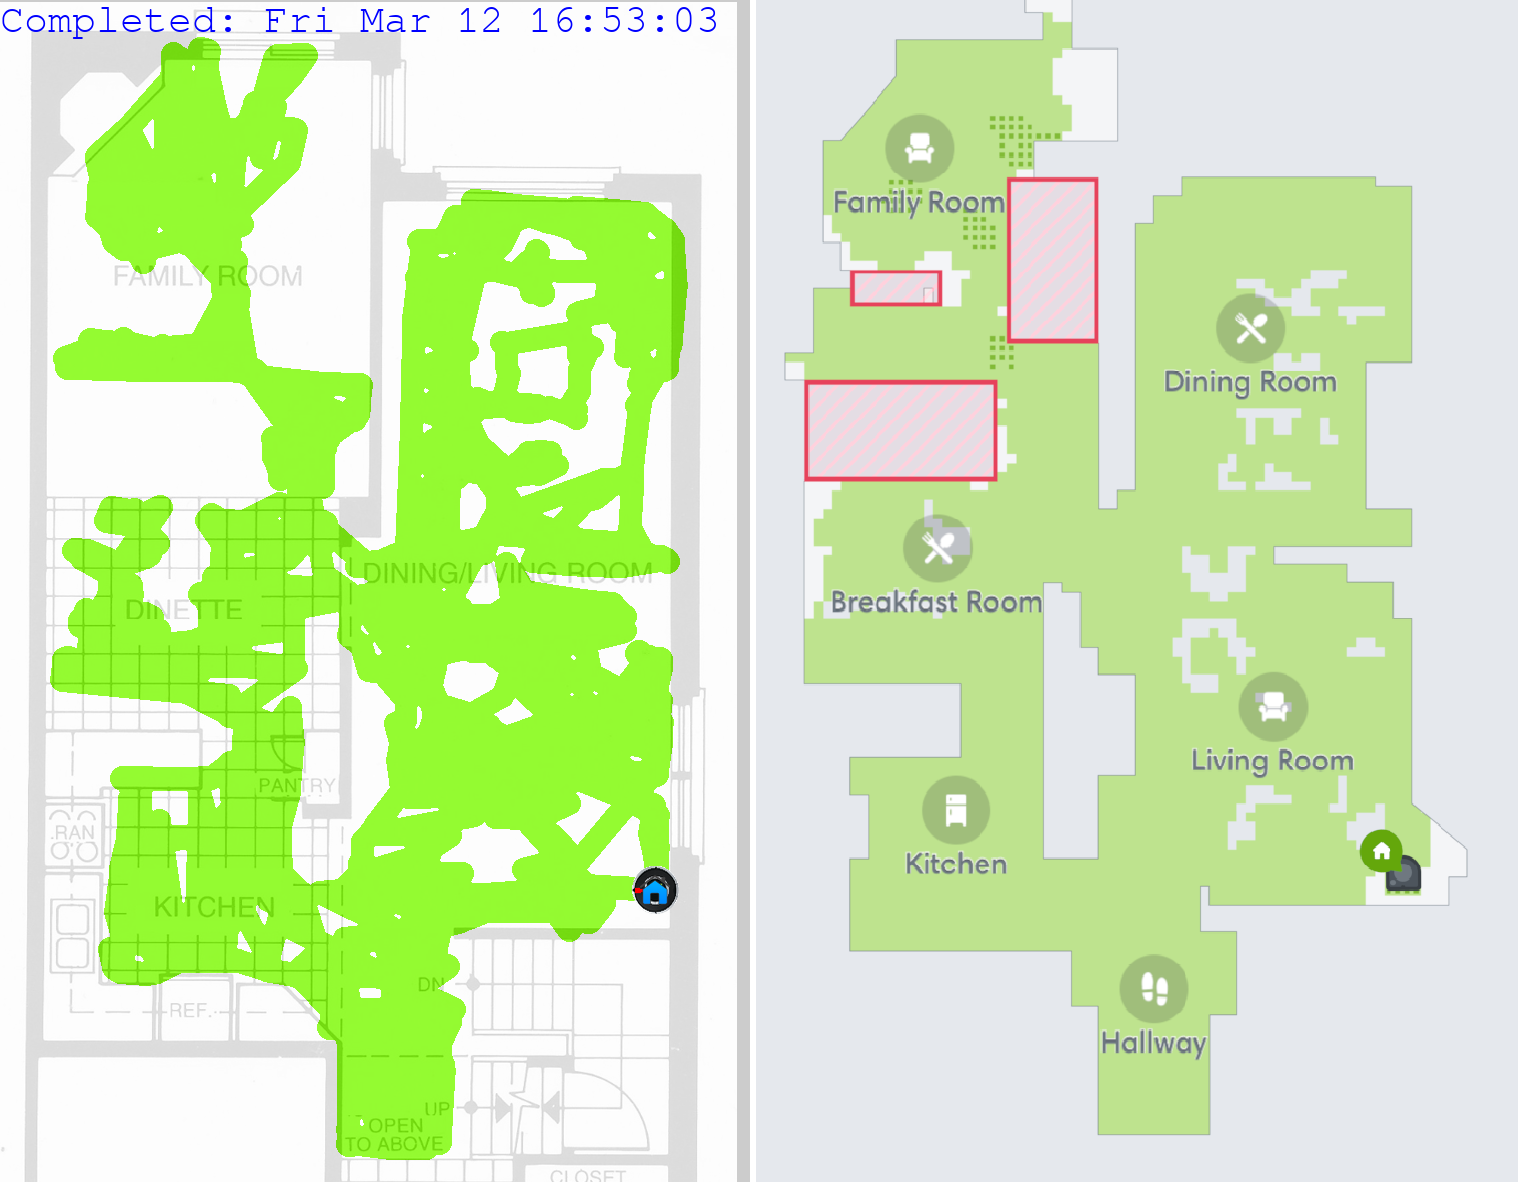 iRobot Roomba cleaning map comparison